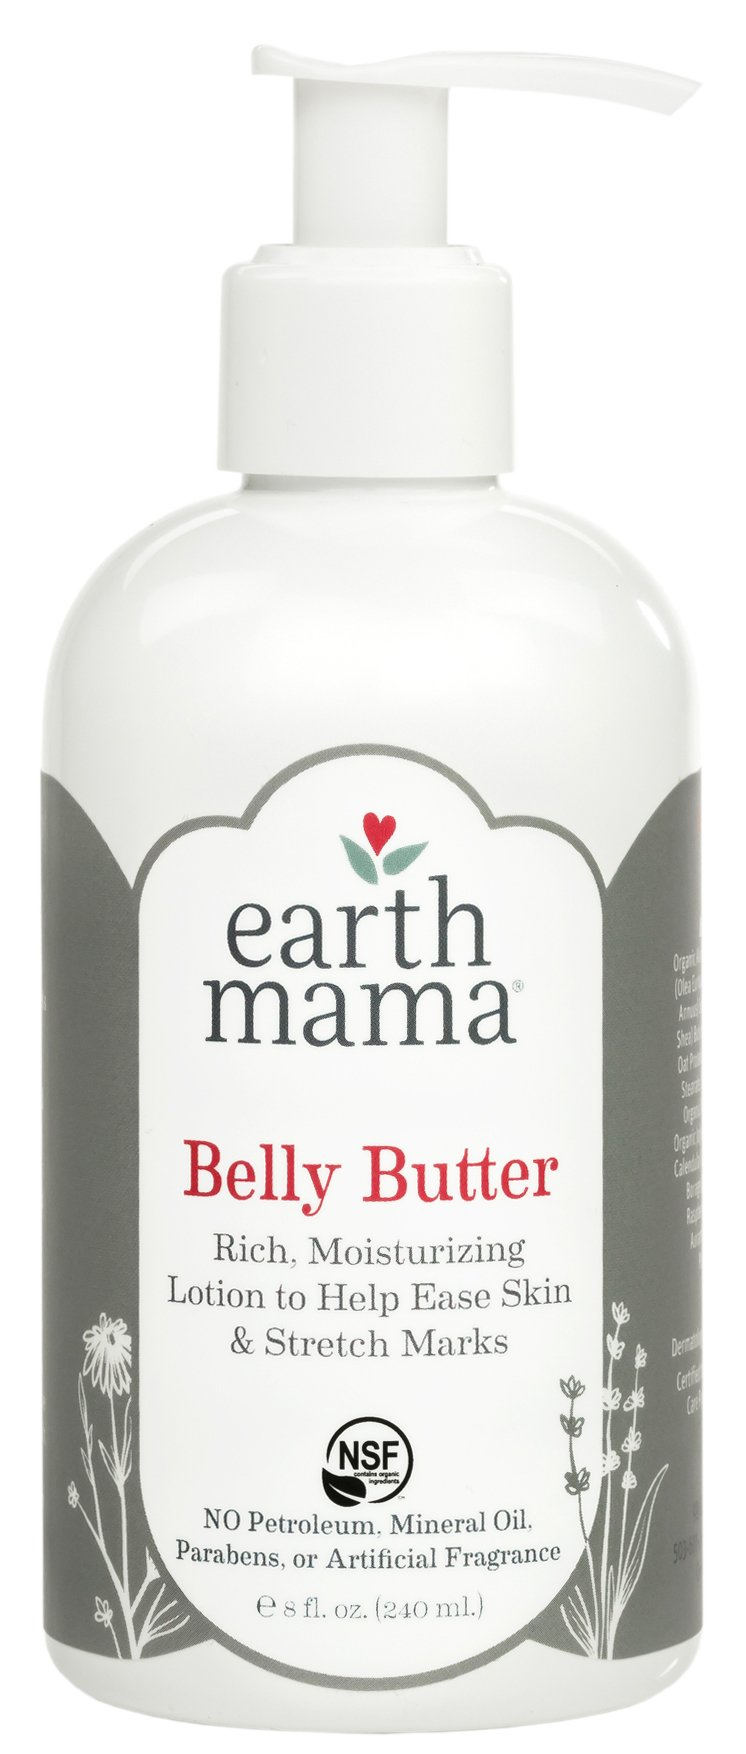 Belly Butter by Earth Mama | Contains Organic Herbs and Oils to Help Ease Skin and Stretch Marks During Pregnancy, No Artificial Fragrance, 8-Fluid Ounce